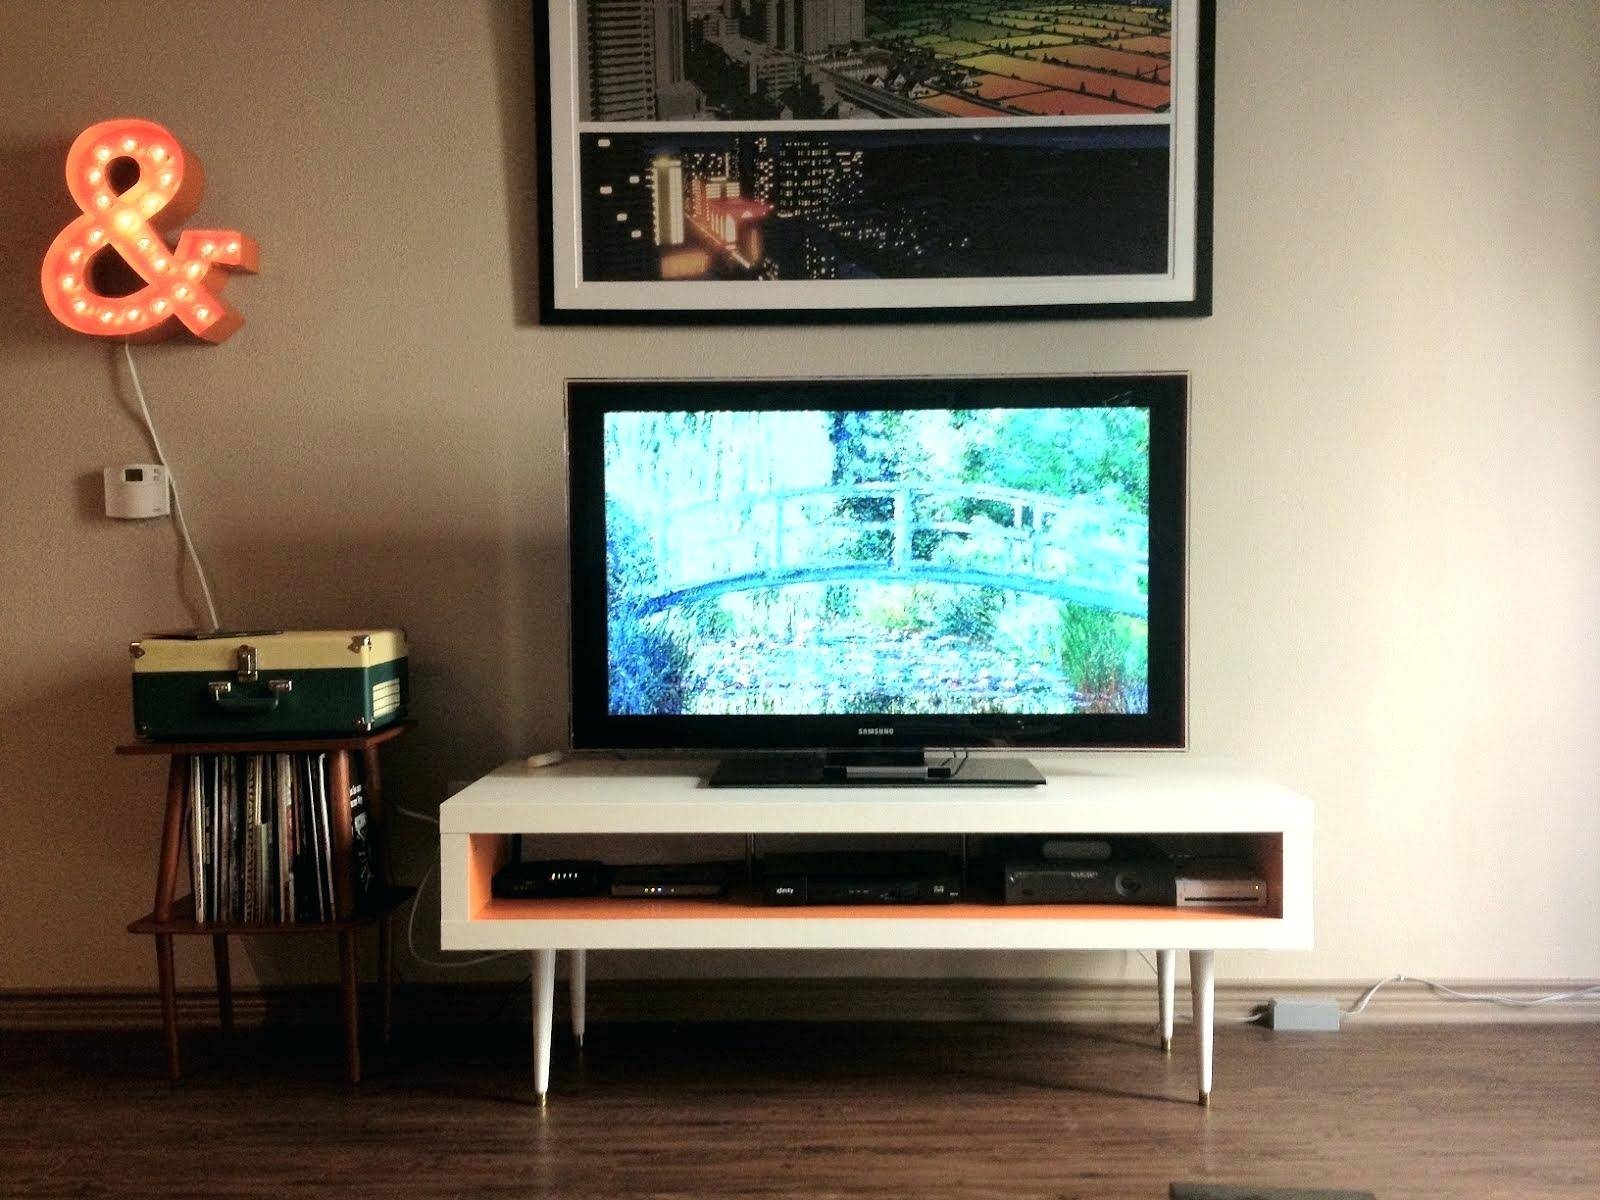 Tv Stand : Furniture Ideas 60 Techlink Facet Ftp100Lo Tv Stand In Ovid White Tv Stand (View 9 of 15)